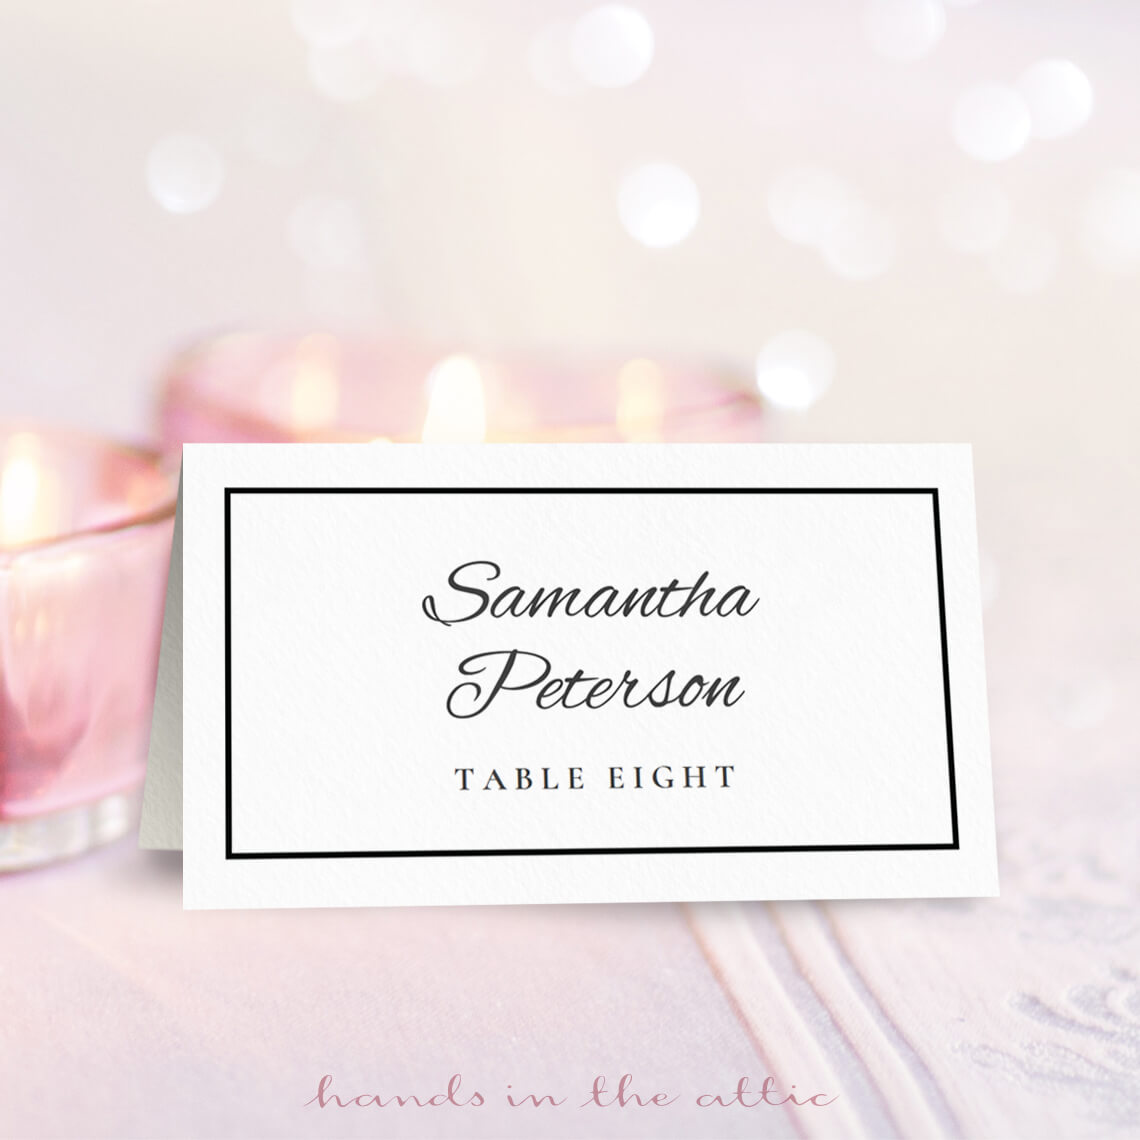 Wedding Place Card Template Free Download Printable Stationery - Gift registry card template free